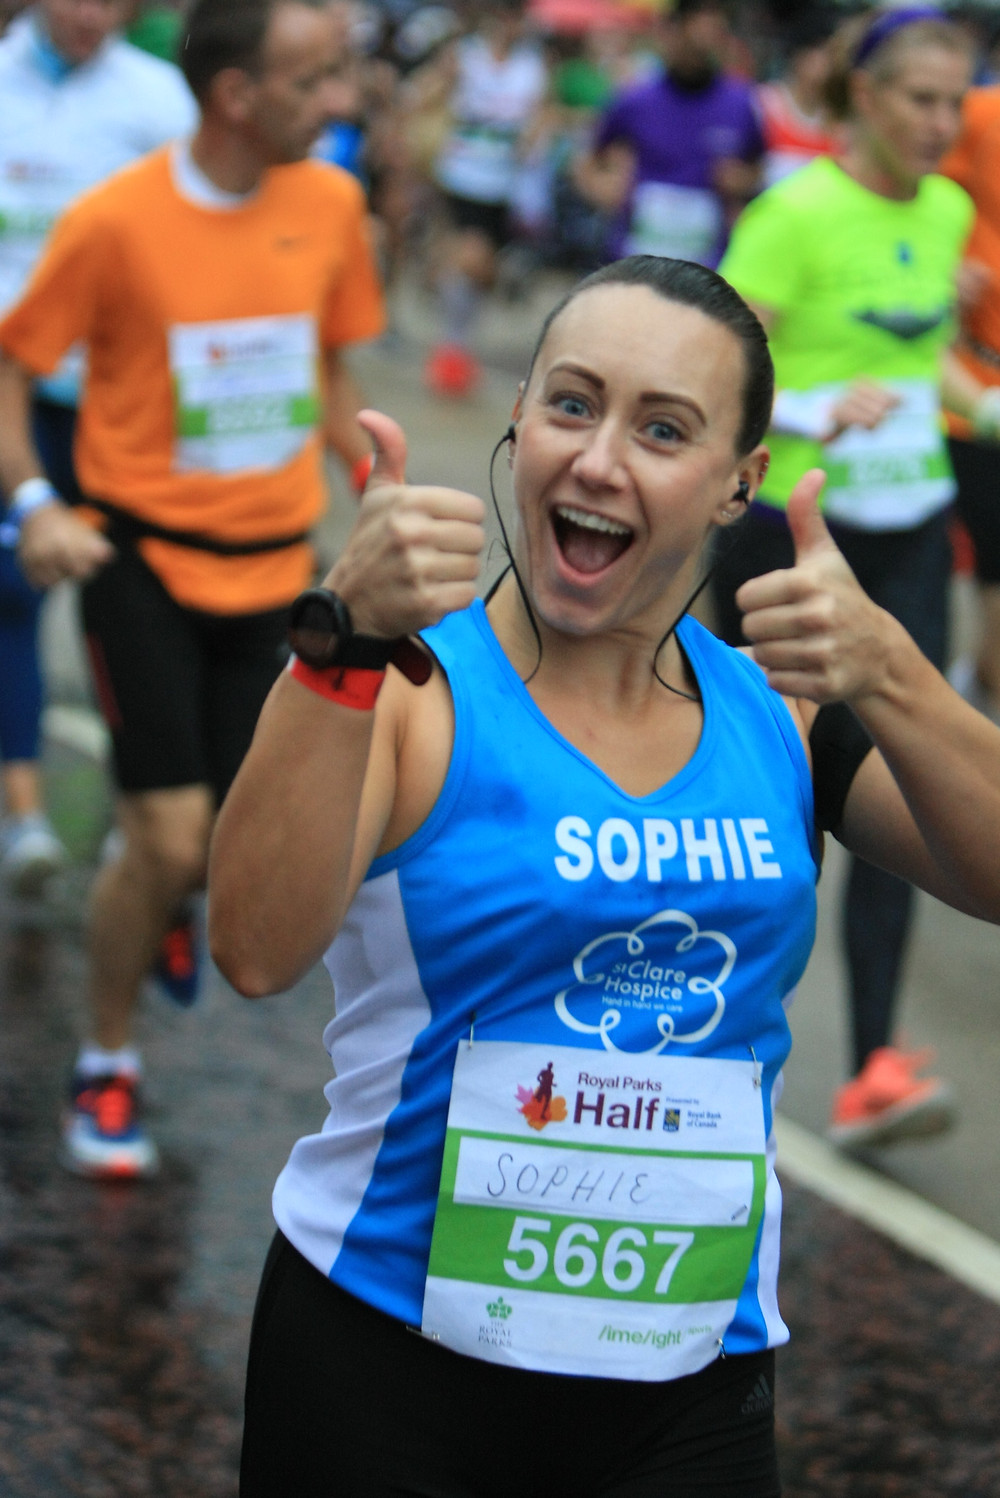 Sophie Vowden runs Royal Parks Half for St Clare Hospice